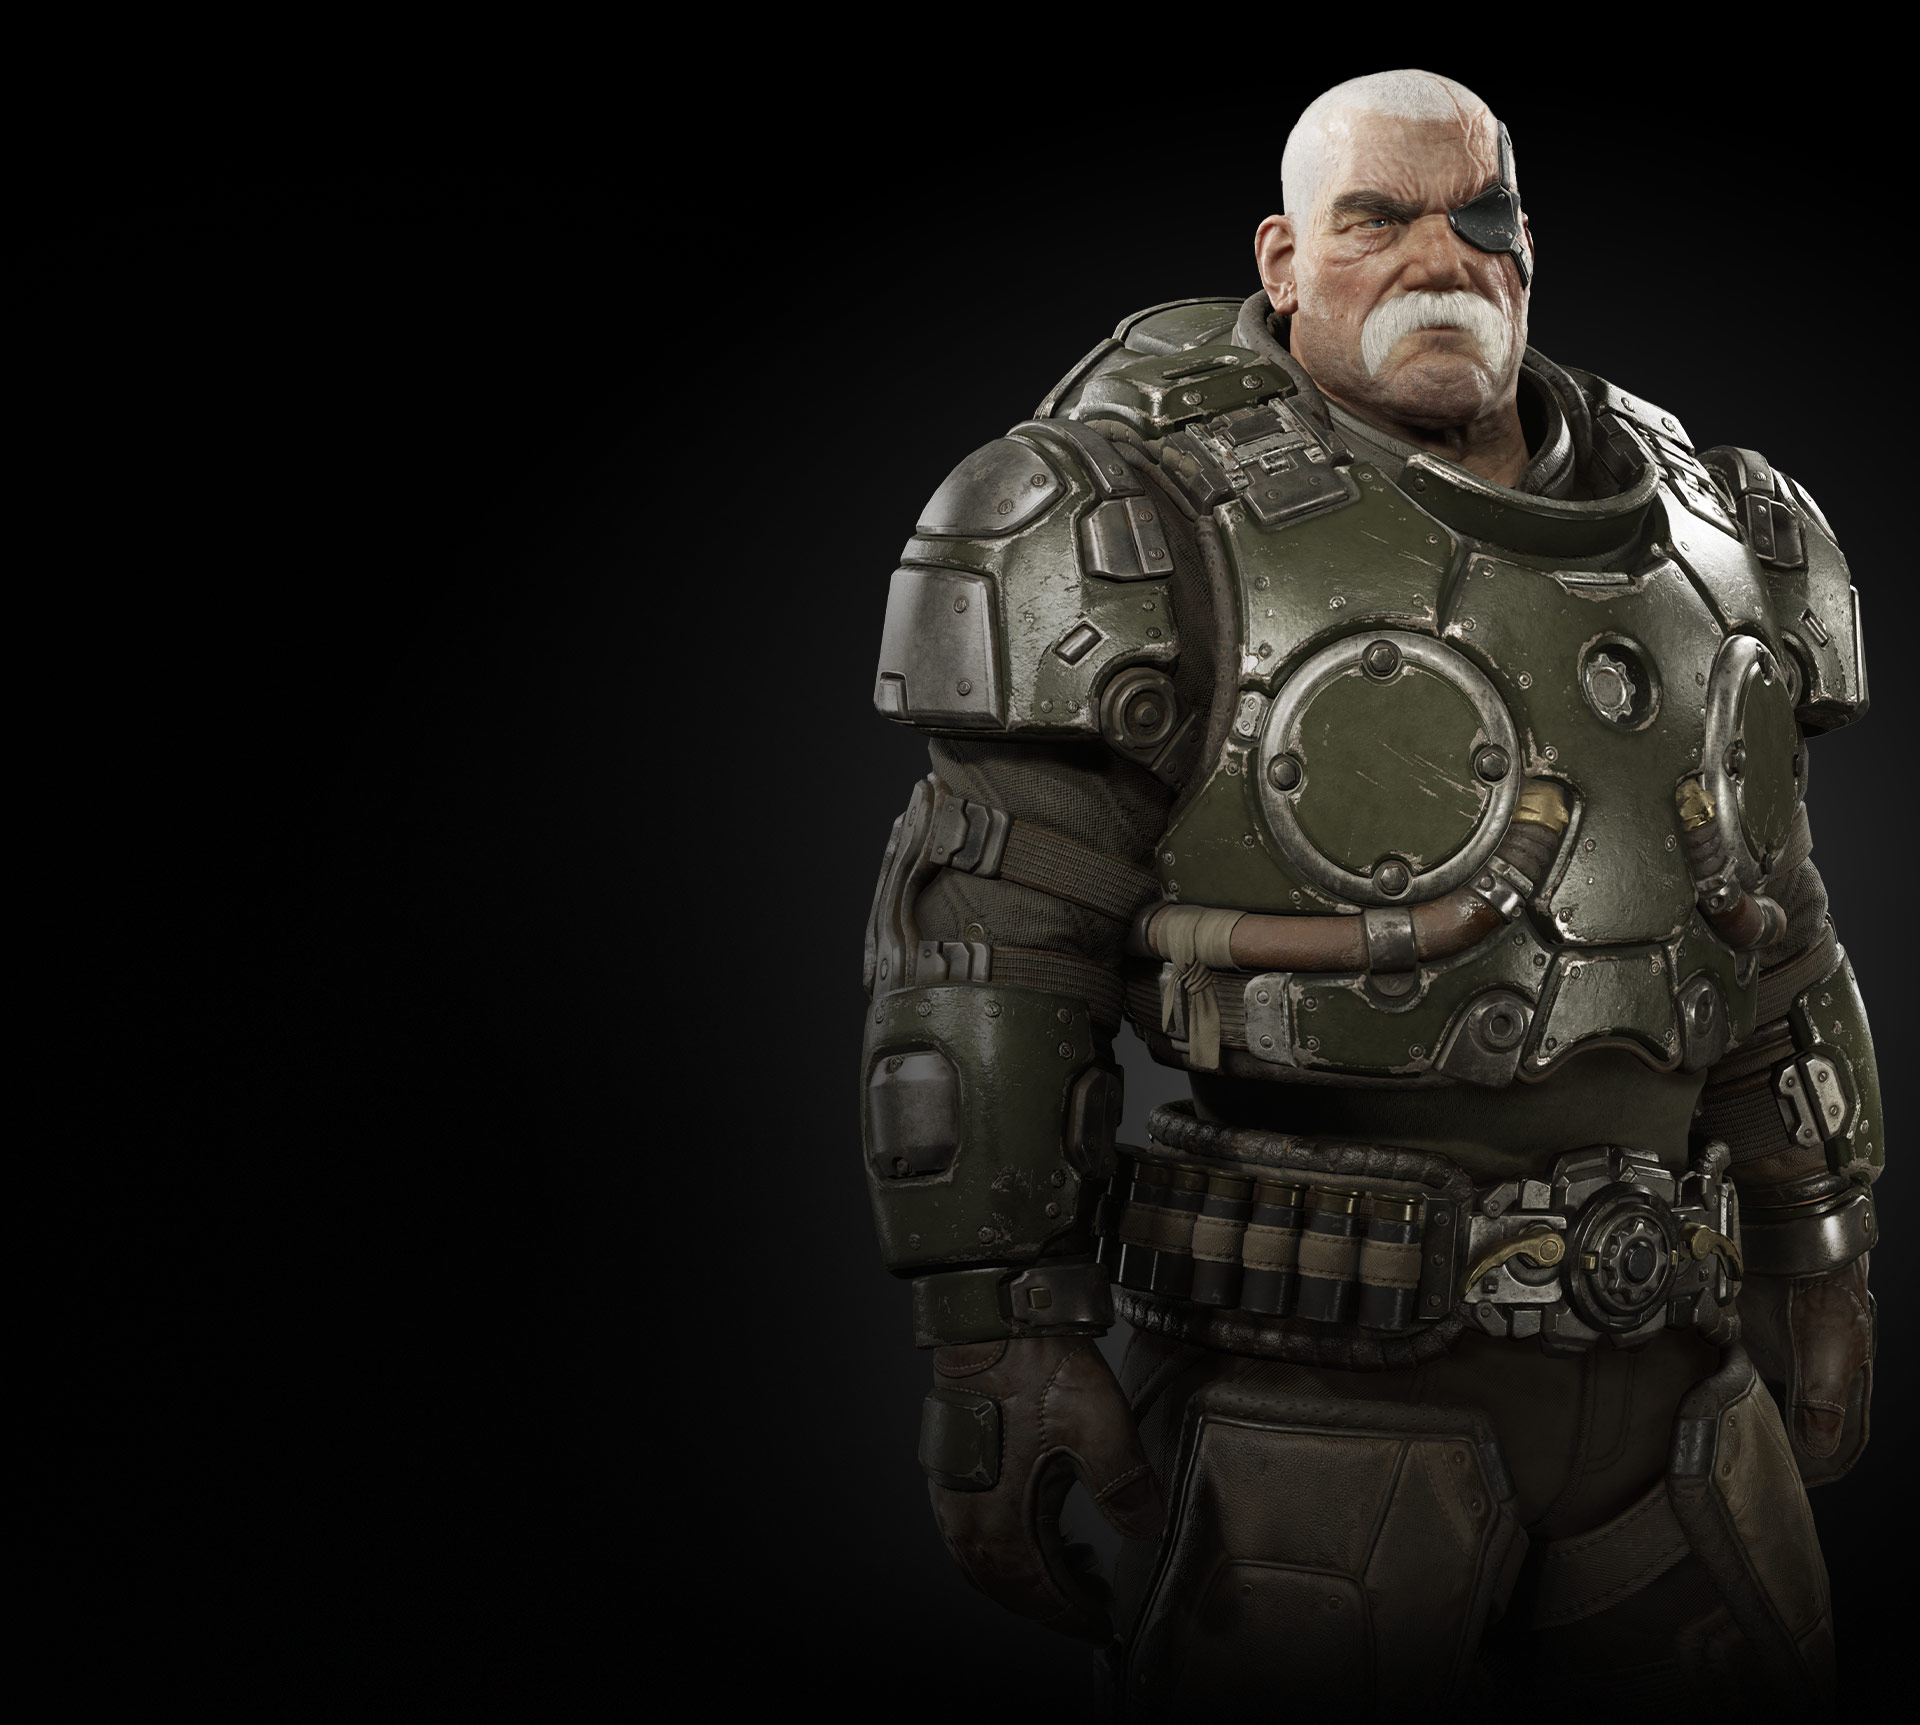 Torso view of Sid Redburn from Gears Tactics